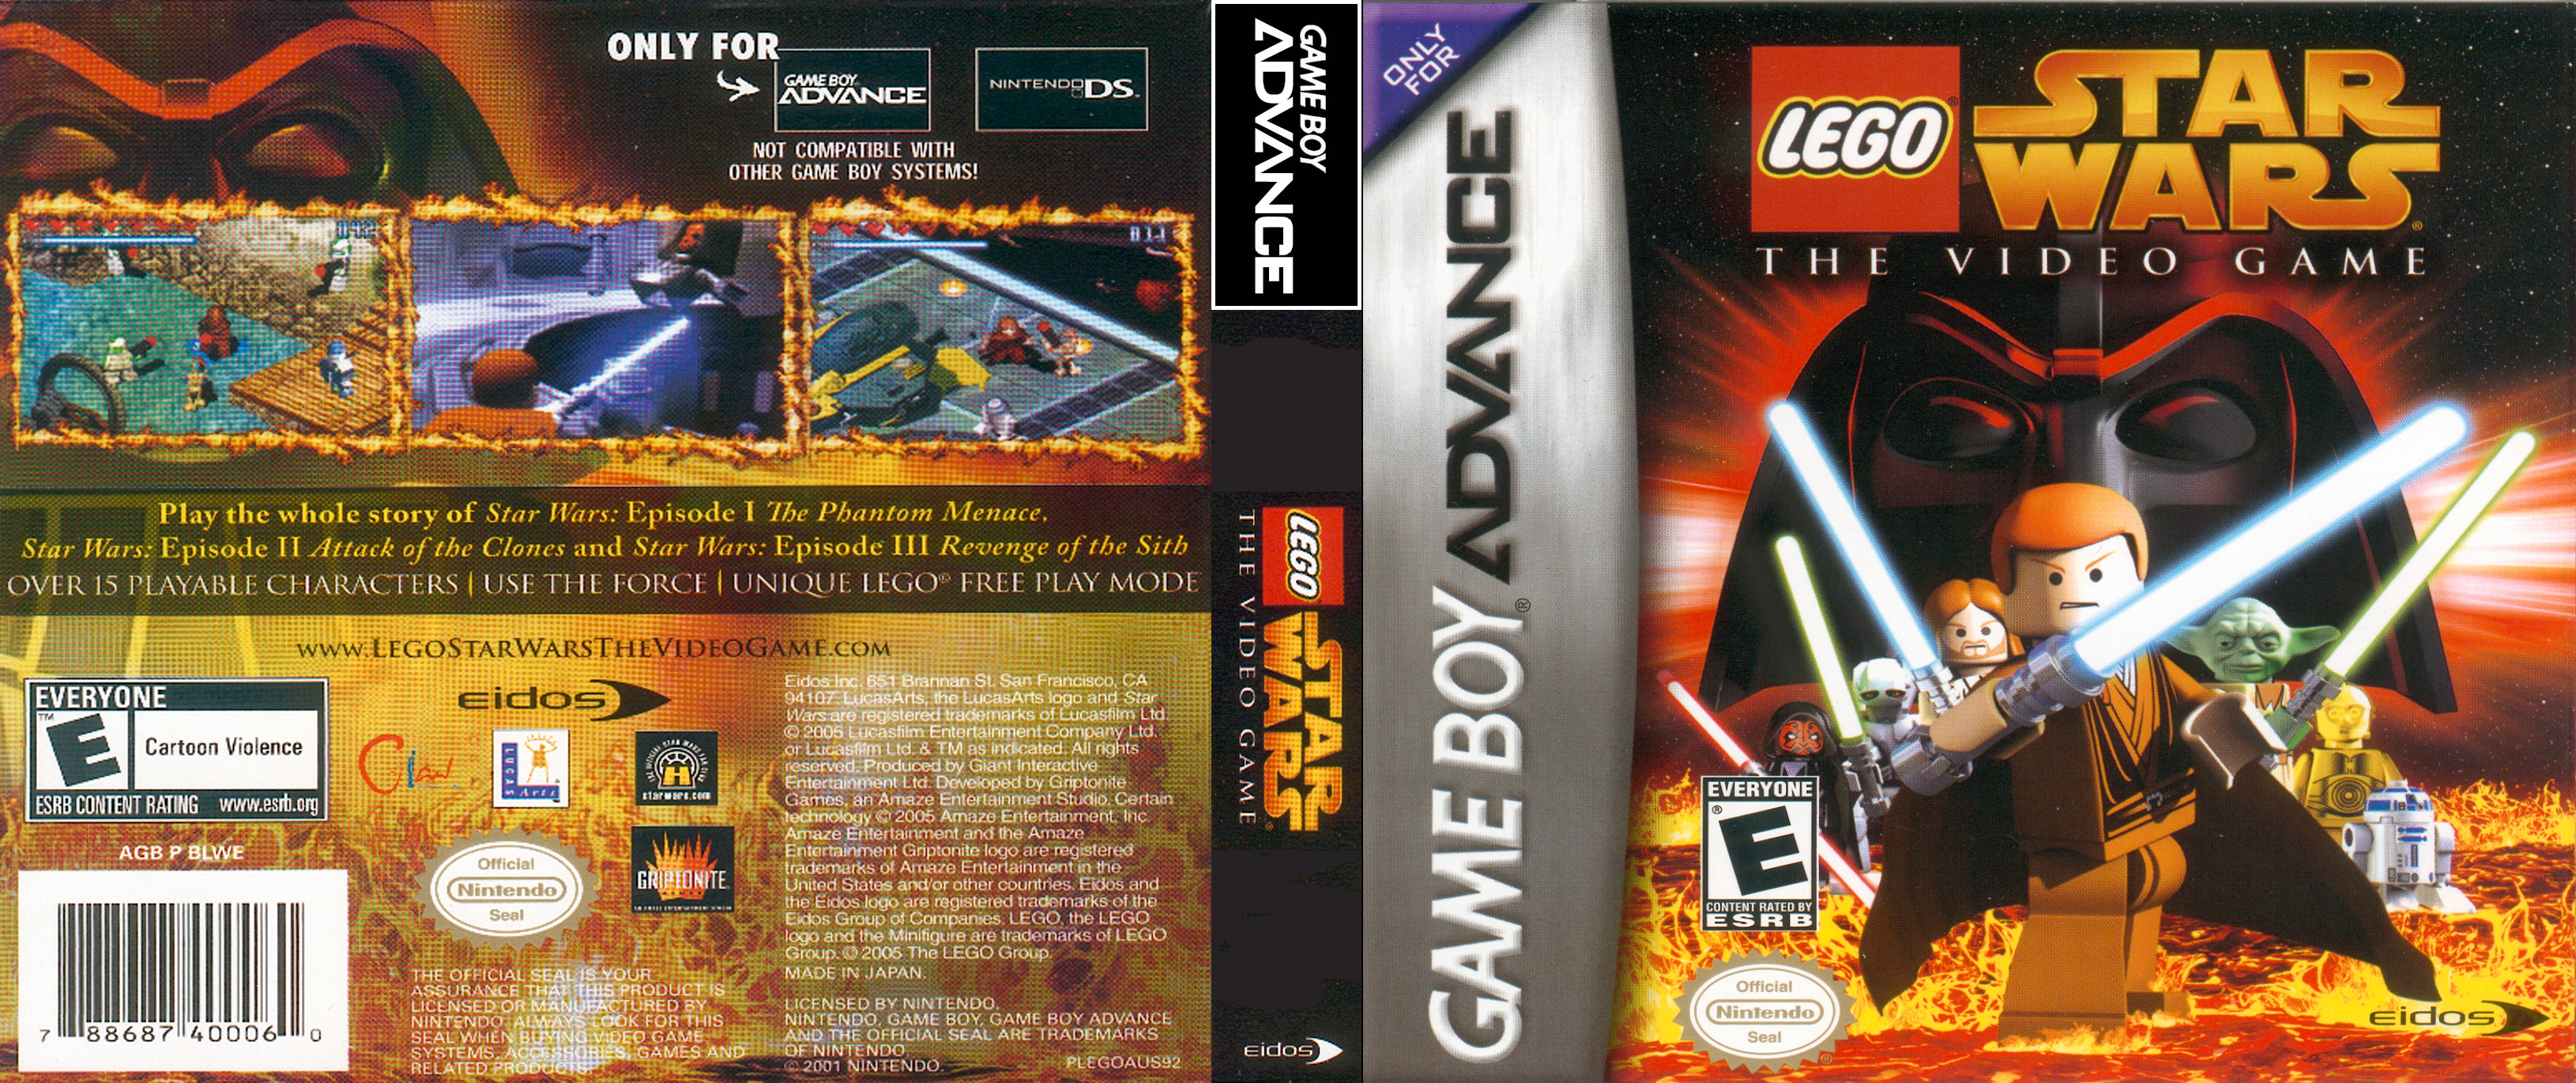 Lego Star Wars Gameboy Advance Covers Cover Century Over 500 000 Album Art Covers For Free